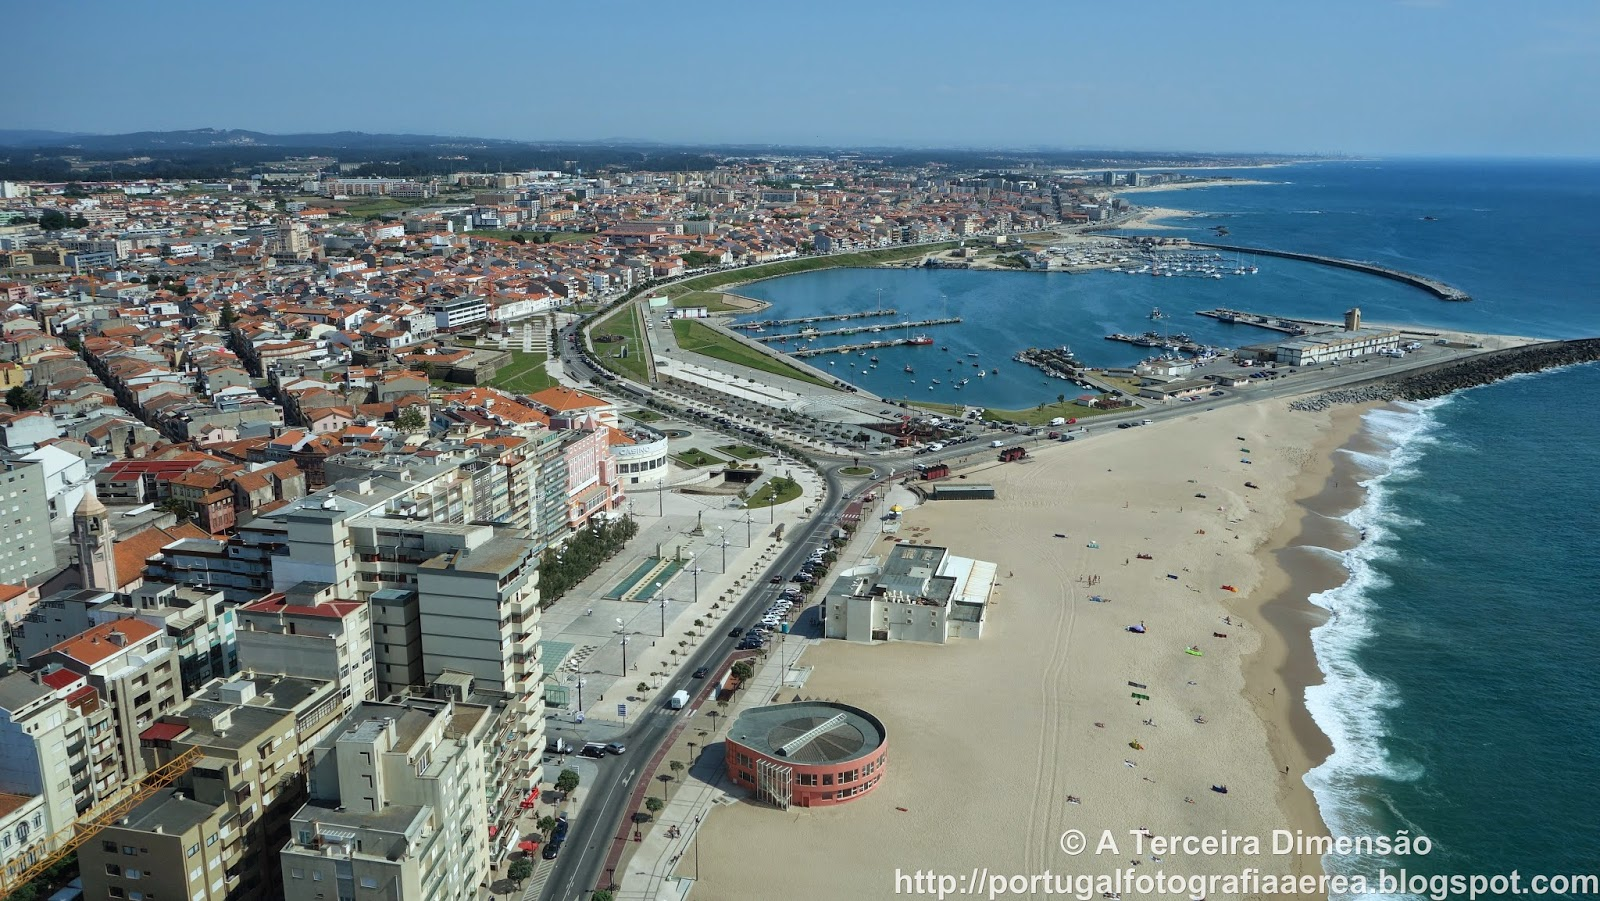 A complete guide to all landbased casinos in Portugal